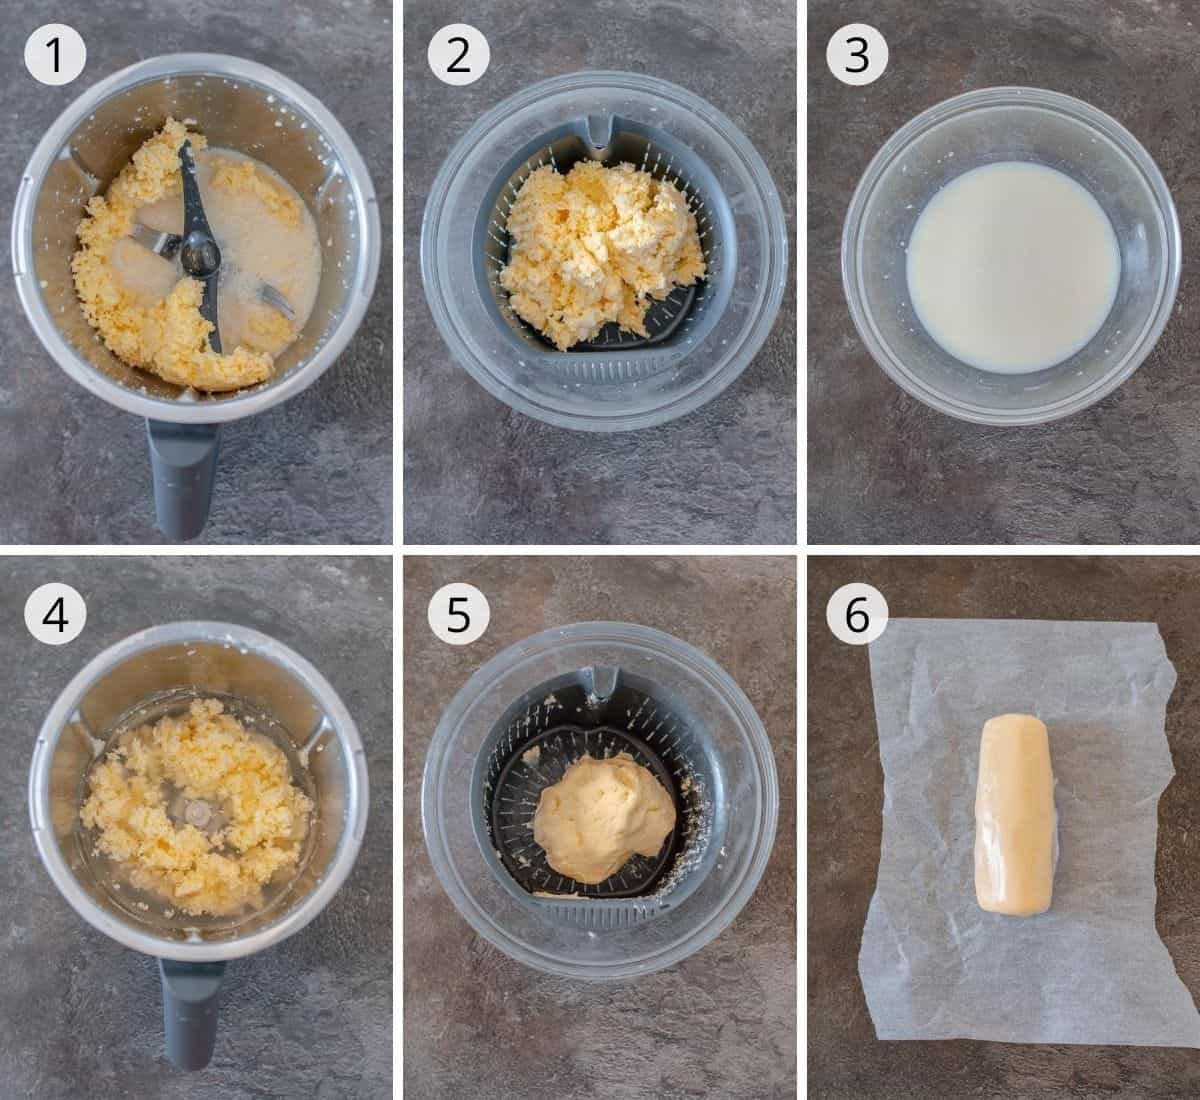 6 step by step images explaining how to make butter from cream in the Thermomix